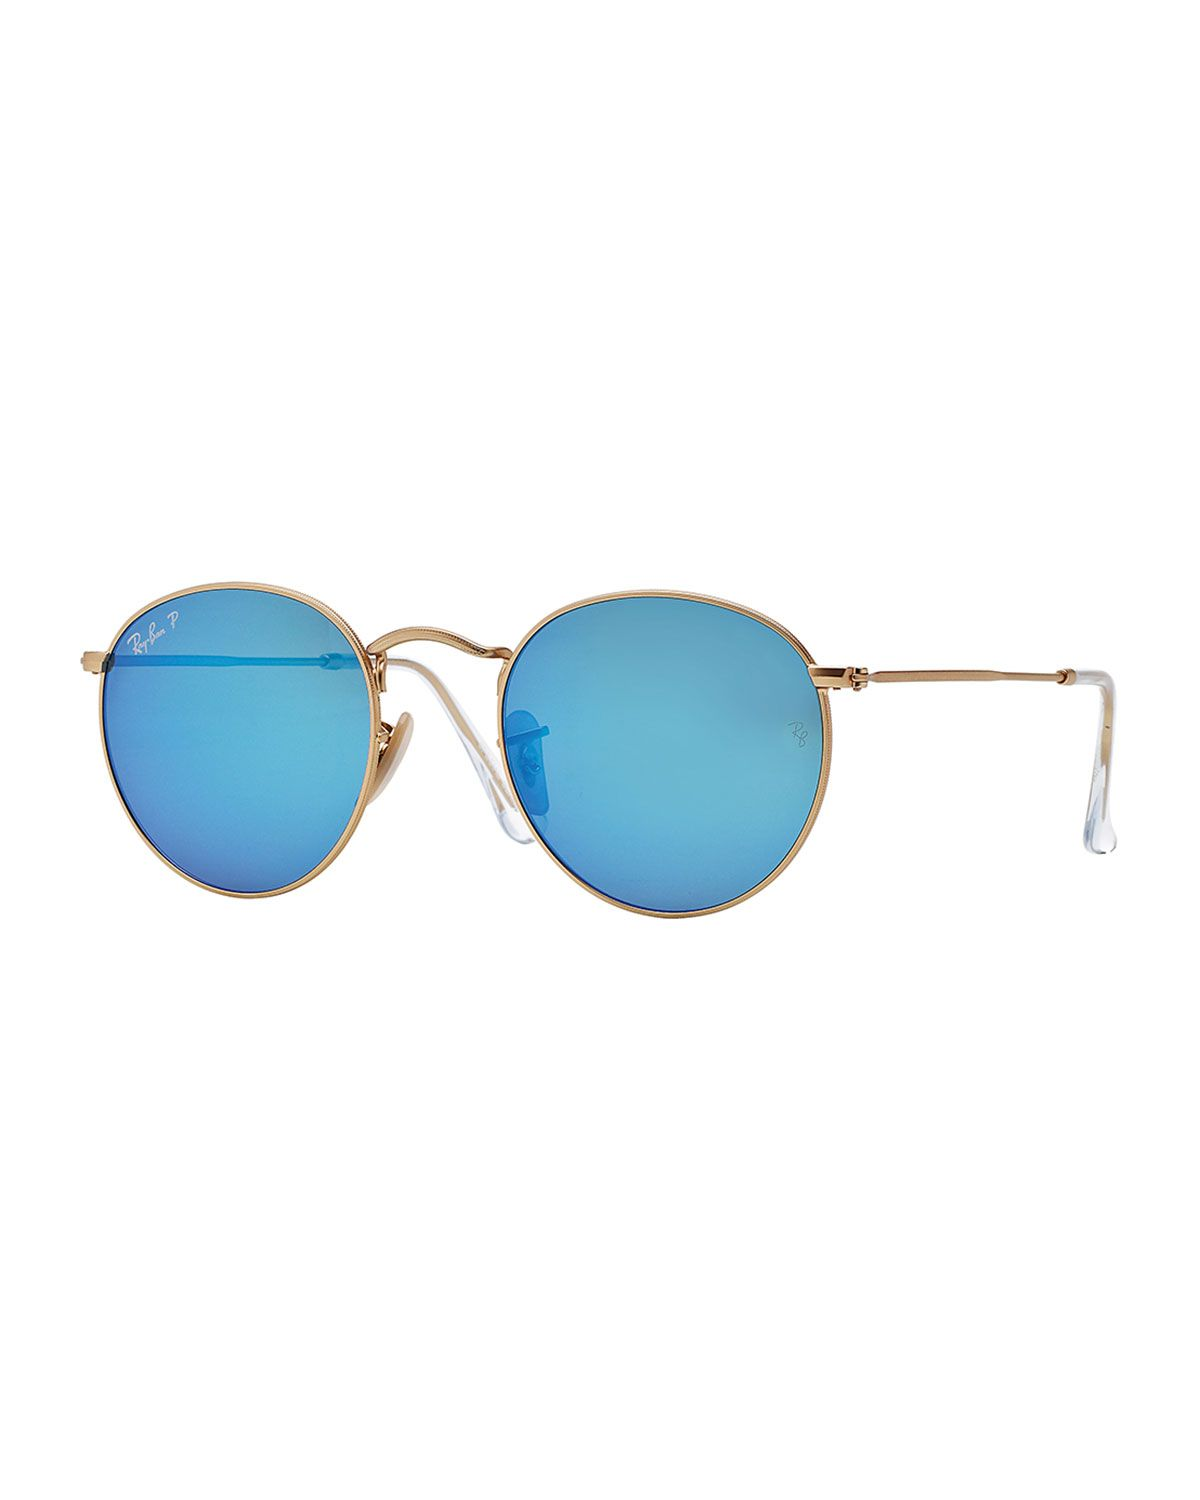 c313f6995ff8d Ray-Ban Polarized Round Metal-Frame Sunglasses with Blue Mirror Lens